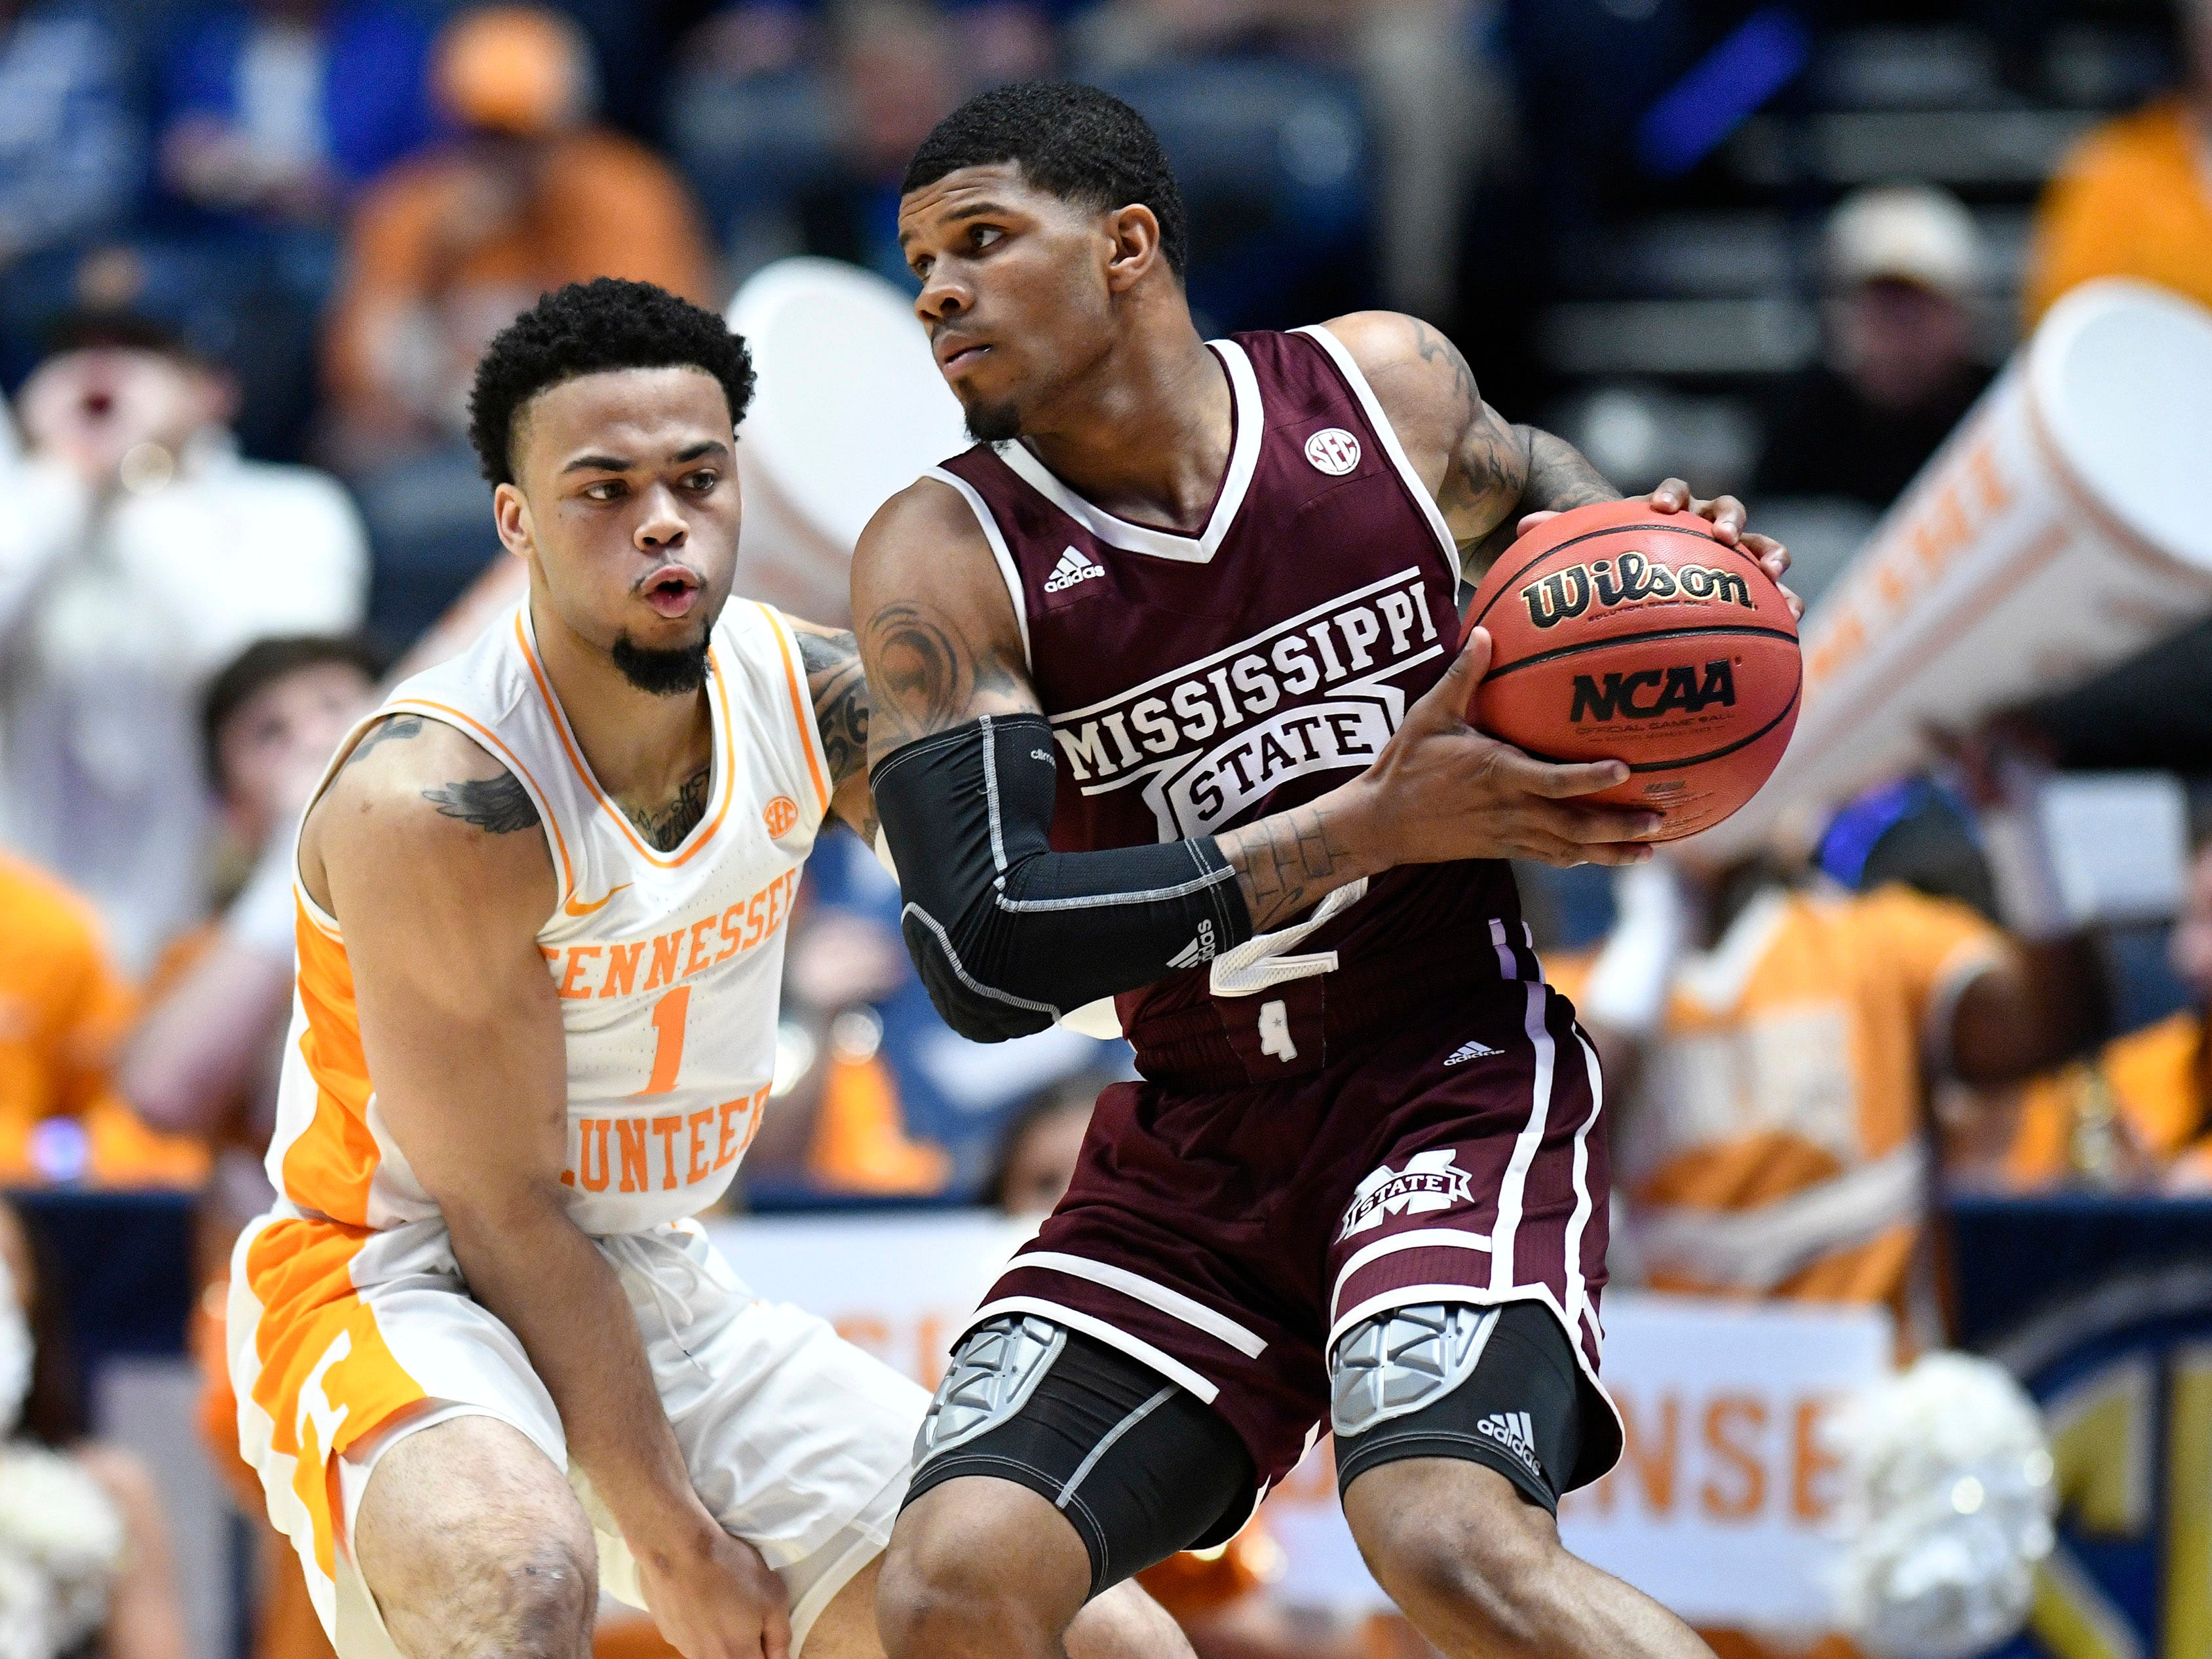 Mississippi State guard Lamar Peters (2) moves the ball defended by Tennessee guard Lamonte Turner (1) during the first half of the SEC Men's Basketball Tournament game at Bridgestone Arena in Nashville, Tenn., Friday, March 15, 2019.